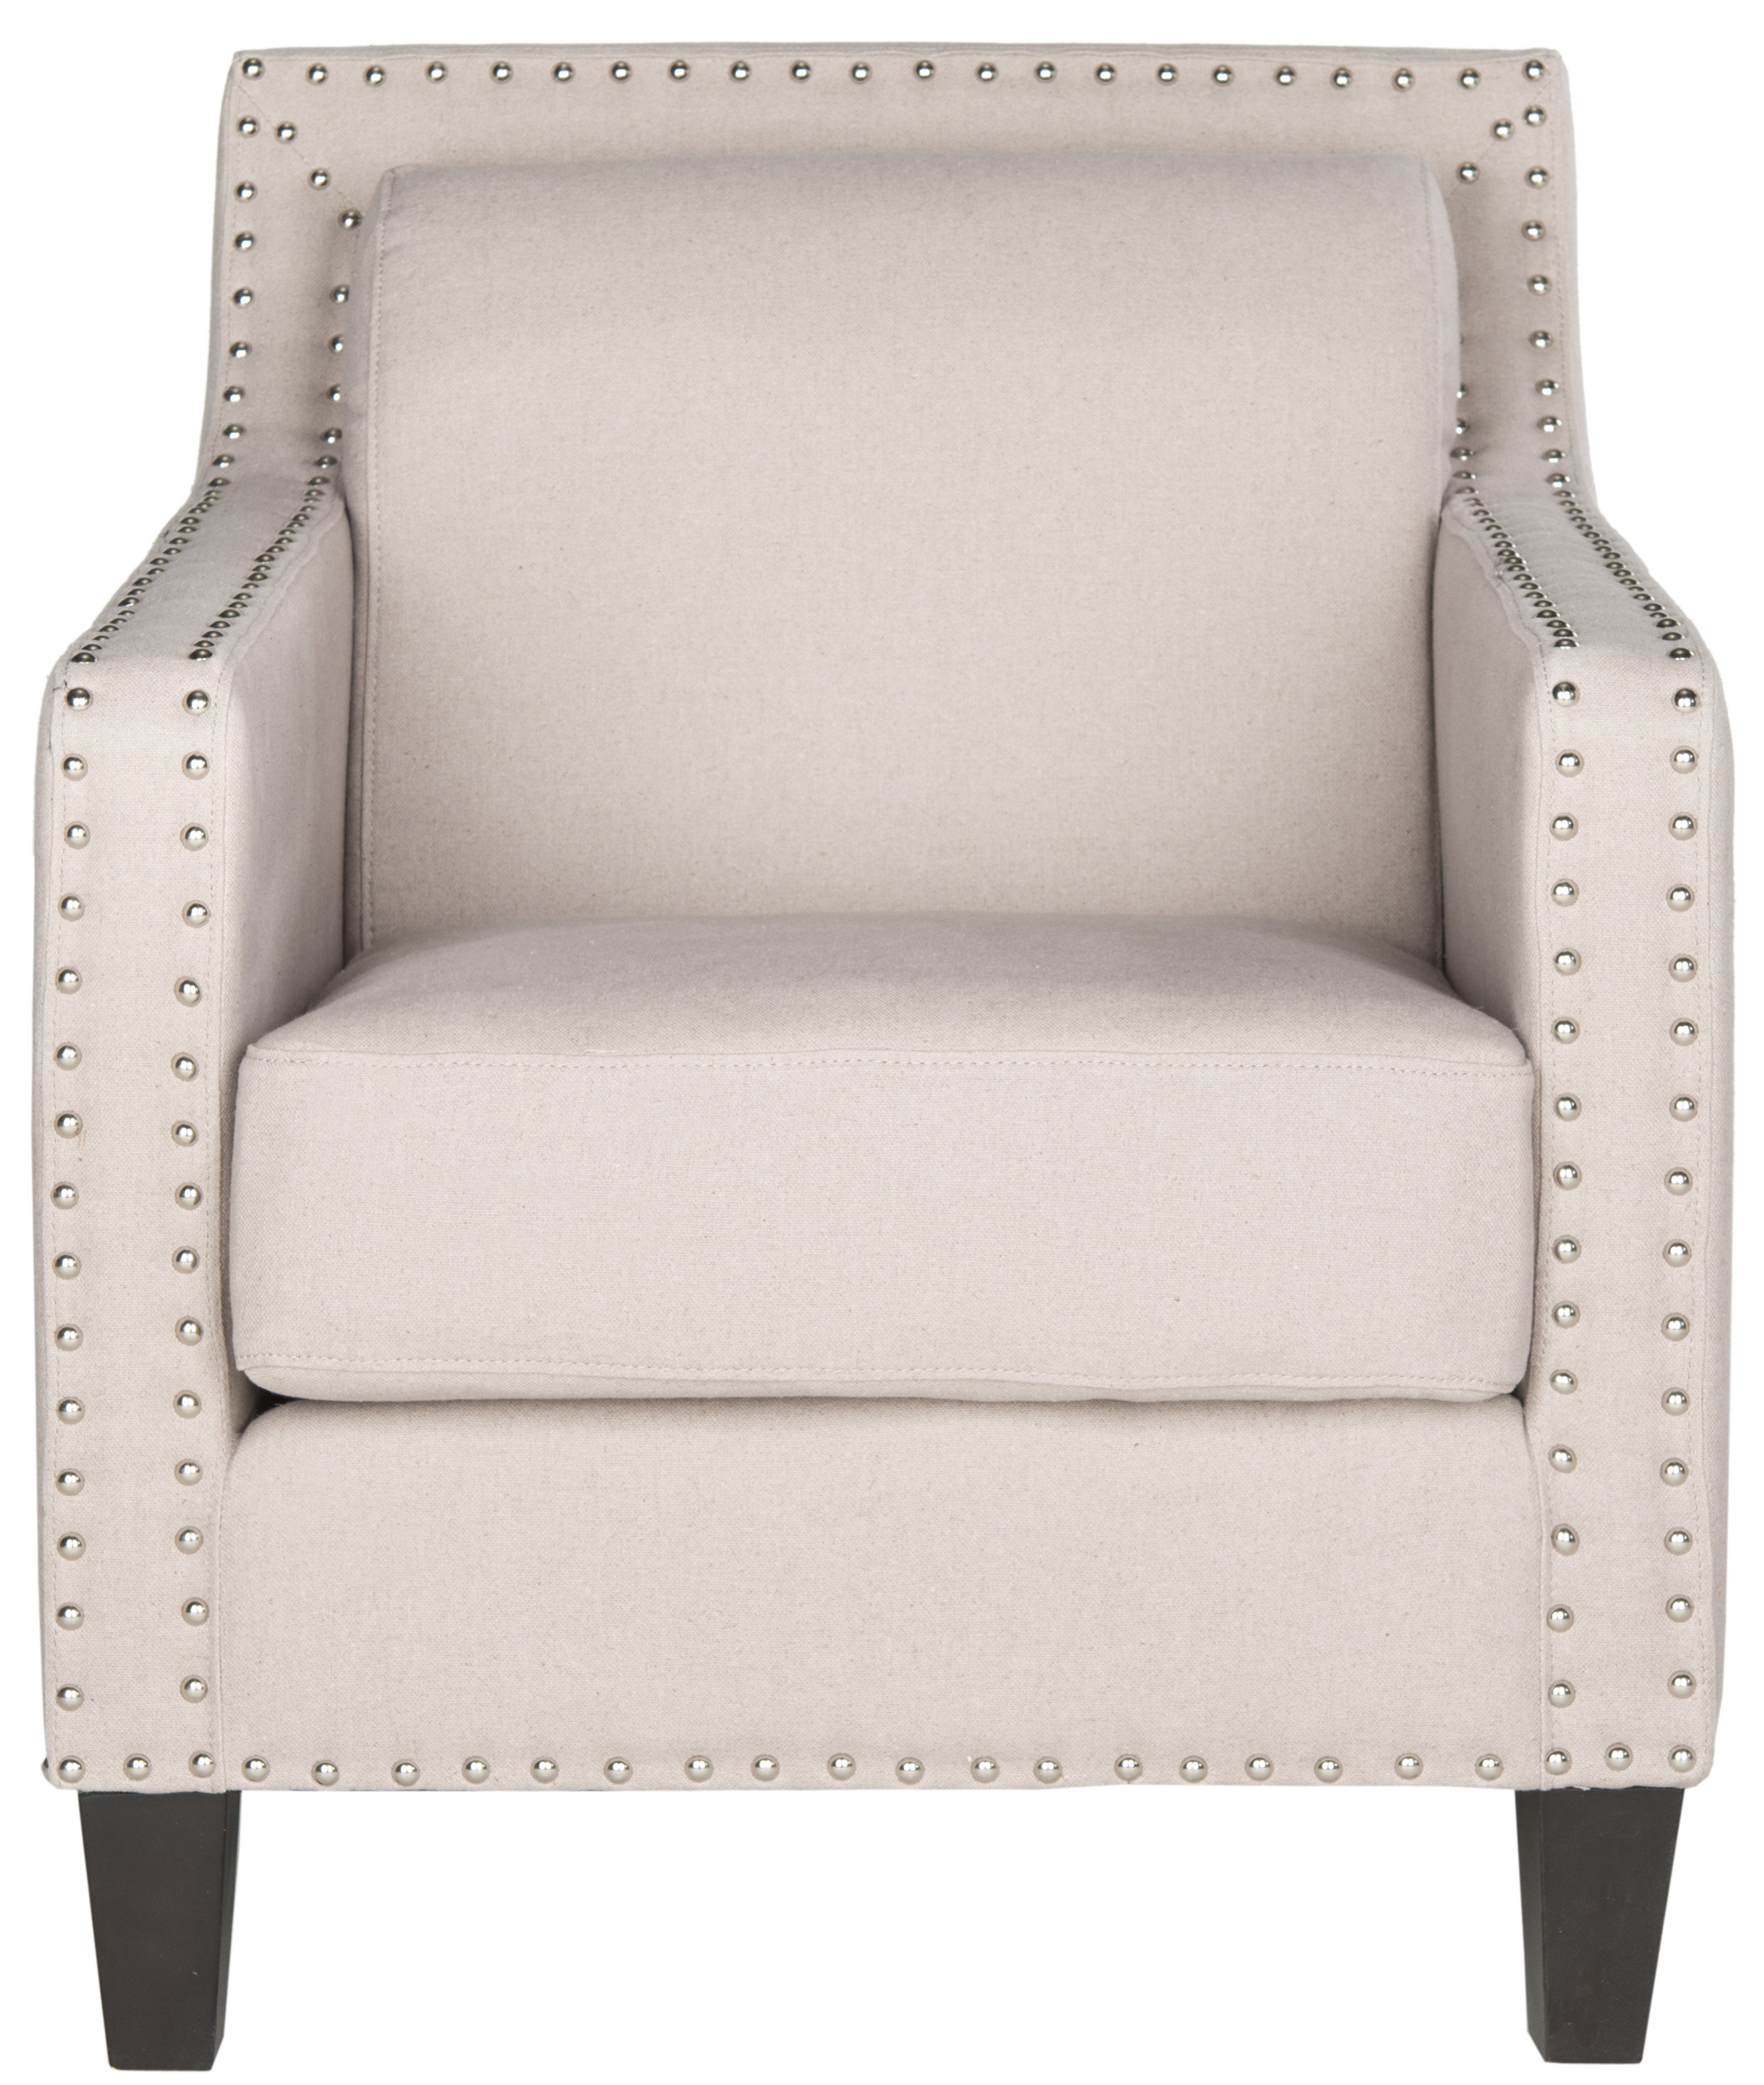 Safavieh Lucy Armchair & Reviews | Wayfair Pertaining To Lucy Grey Sofa Chairs (Image 21 of 25)